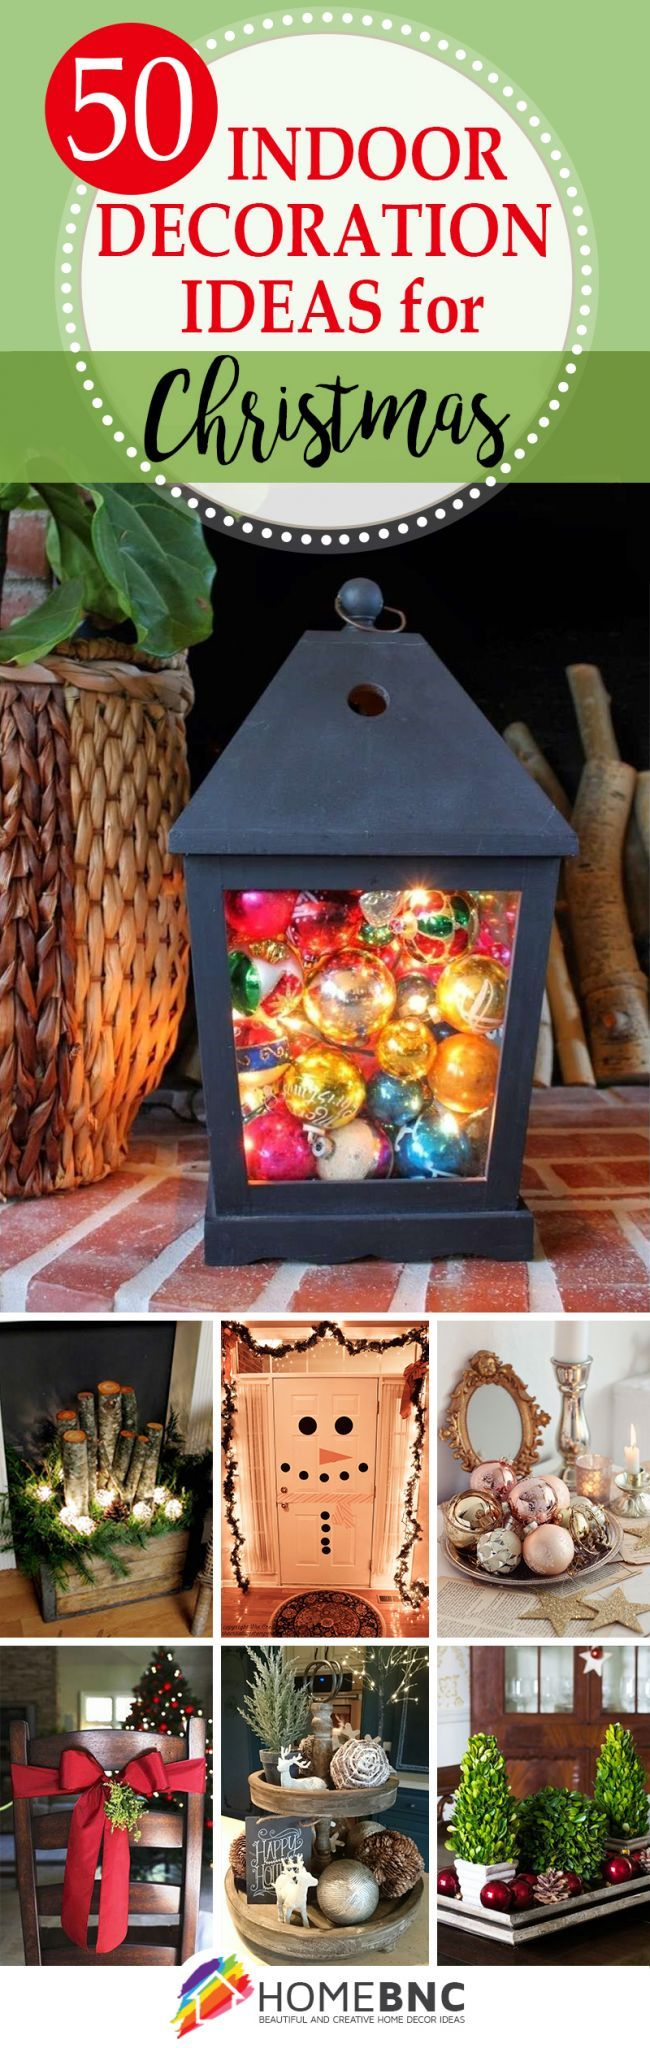 Christmas decorations animated indoor uk - 50 Indoor Decoration Ideas For Christmas That Will Spark Your Creativity This Year